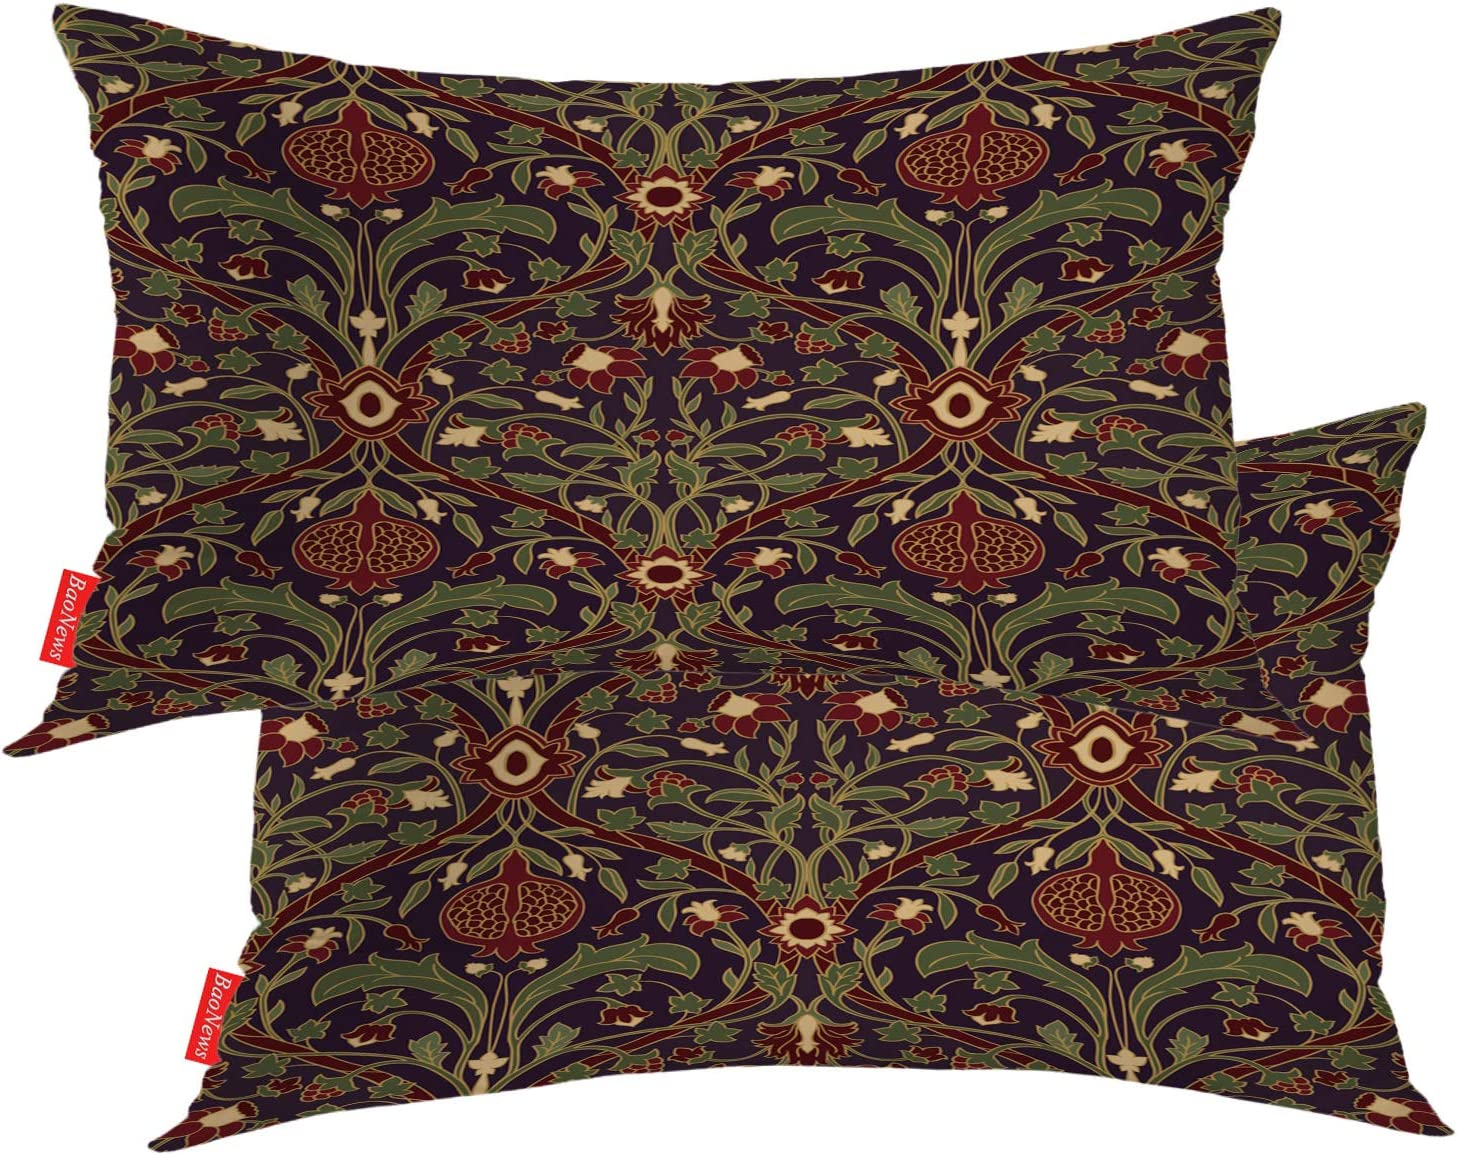 BaoNews Floral Pillow Covers, Vintage Persian Tapestry Design Print Lumbar 12 x 20 Inches Decorative Throw Pillow Covers Cotton Cushion for Sofa Bedroom Car, Burgundy Garnet, Set of 2